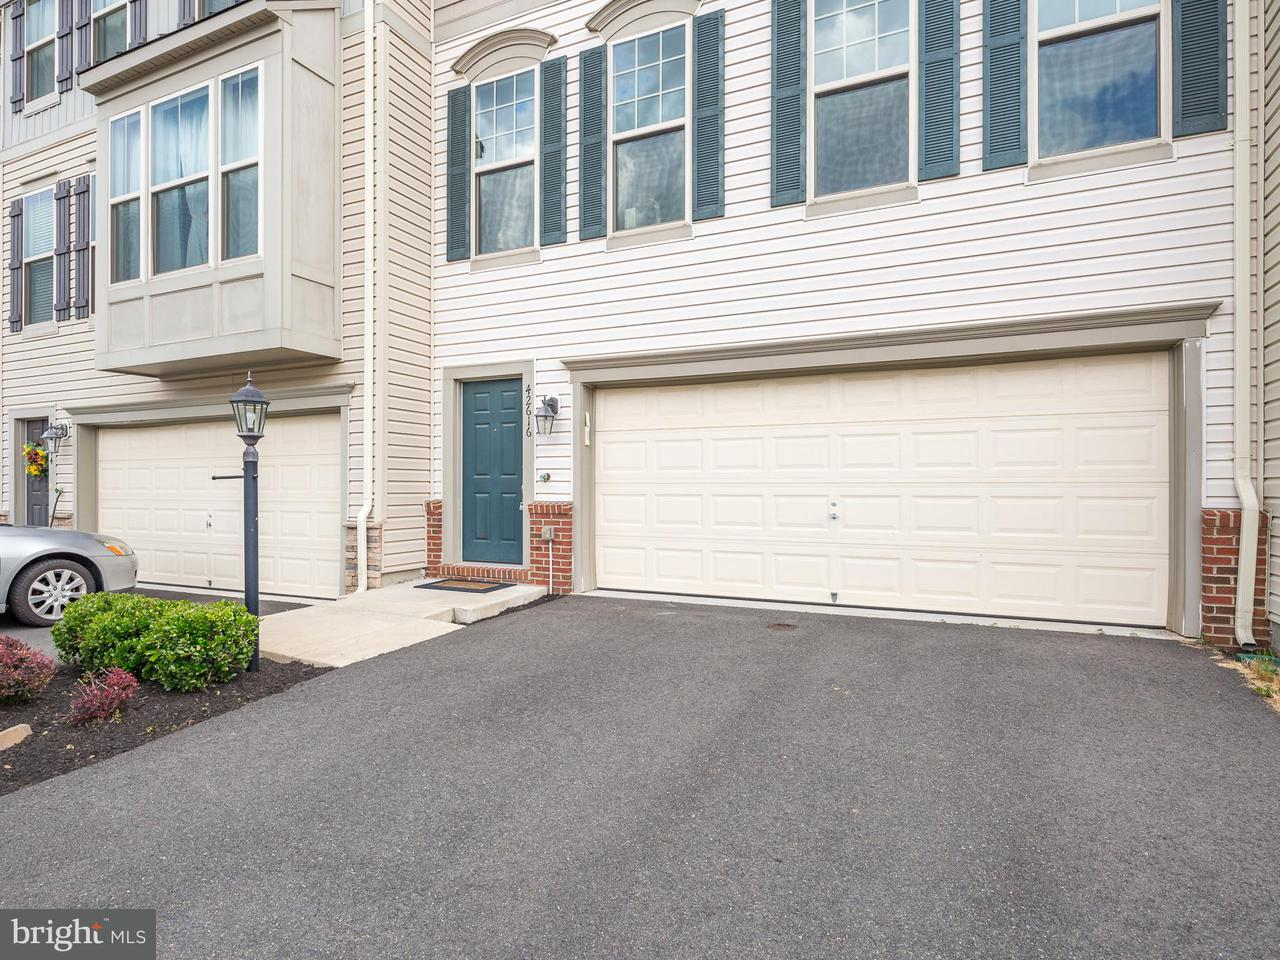 Townhouse for Sale at 42616 GALBRAITH SQ 42616 GALBRAITH SQ Broadlands, Virginia 20148 United States